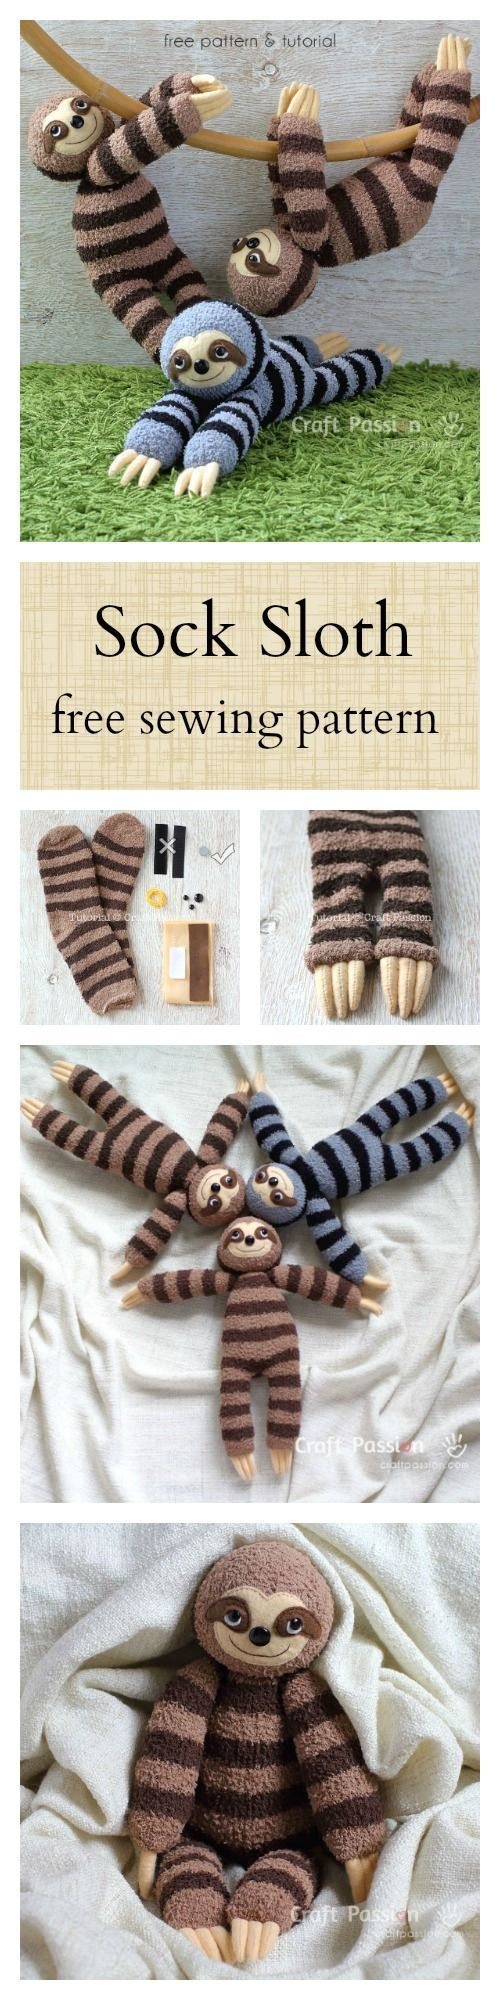 Sock Sloth Plushie - Free Sewing Pattern | couture | Pinterest ...